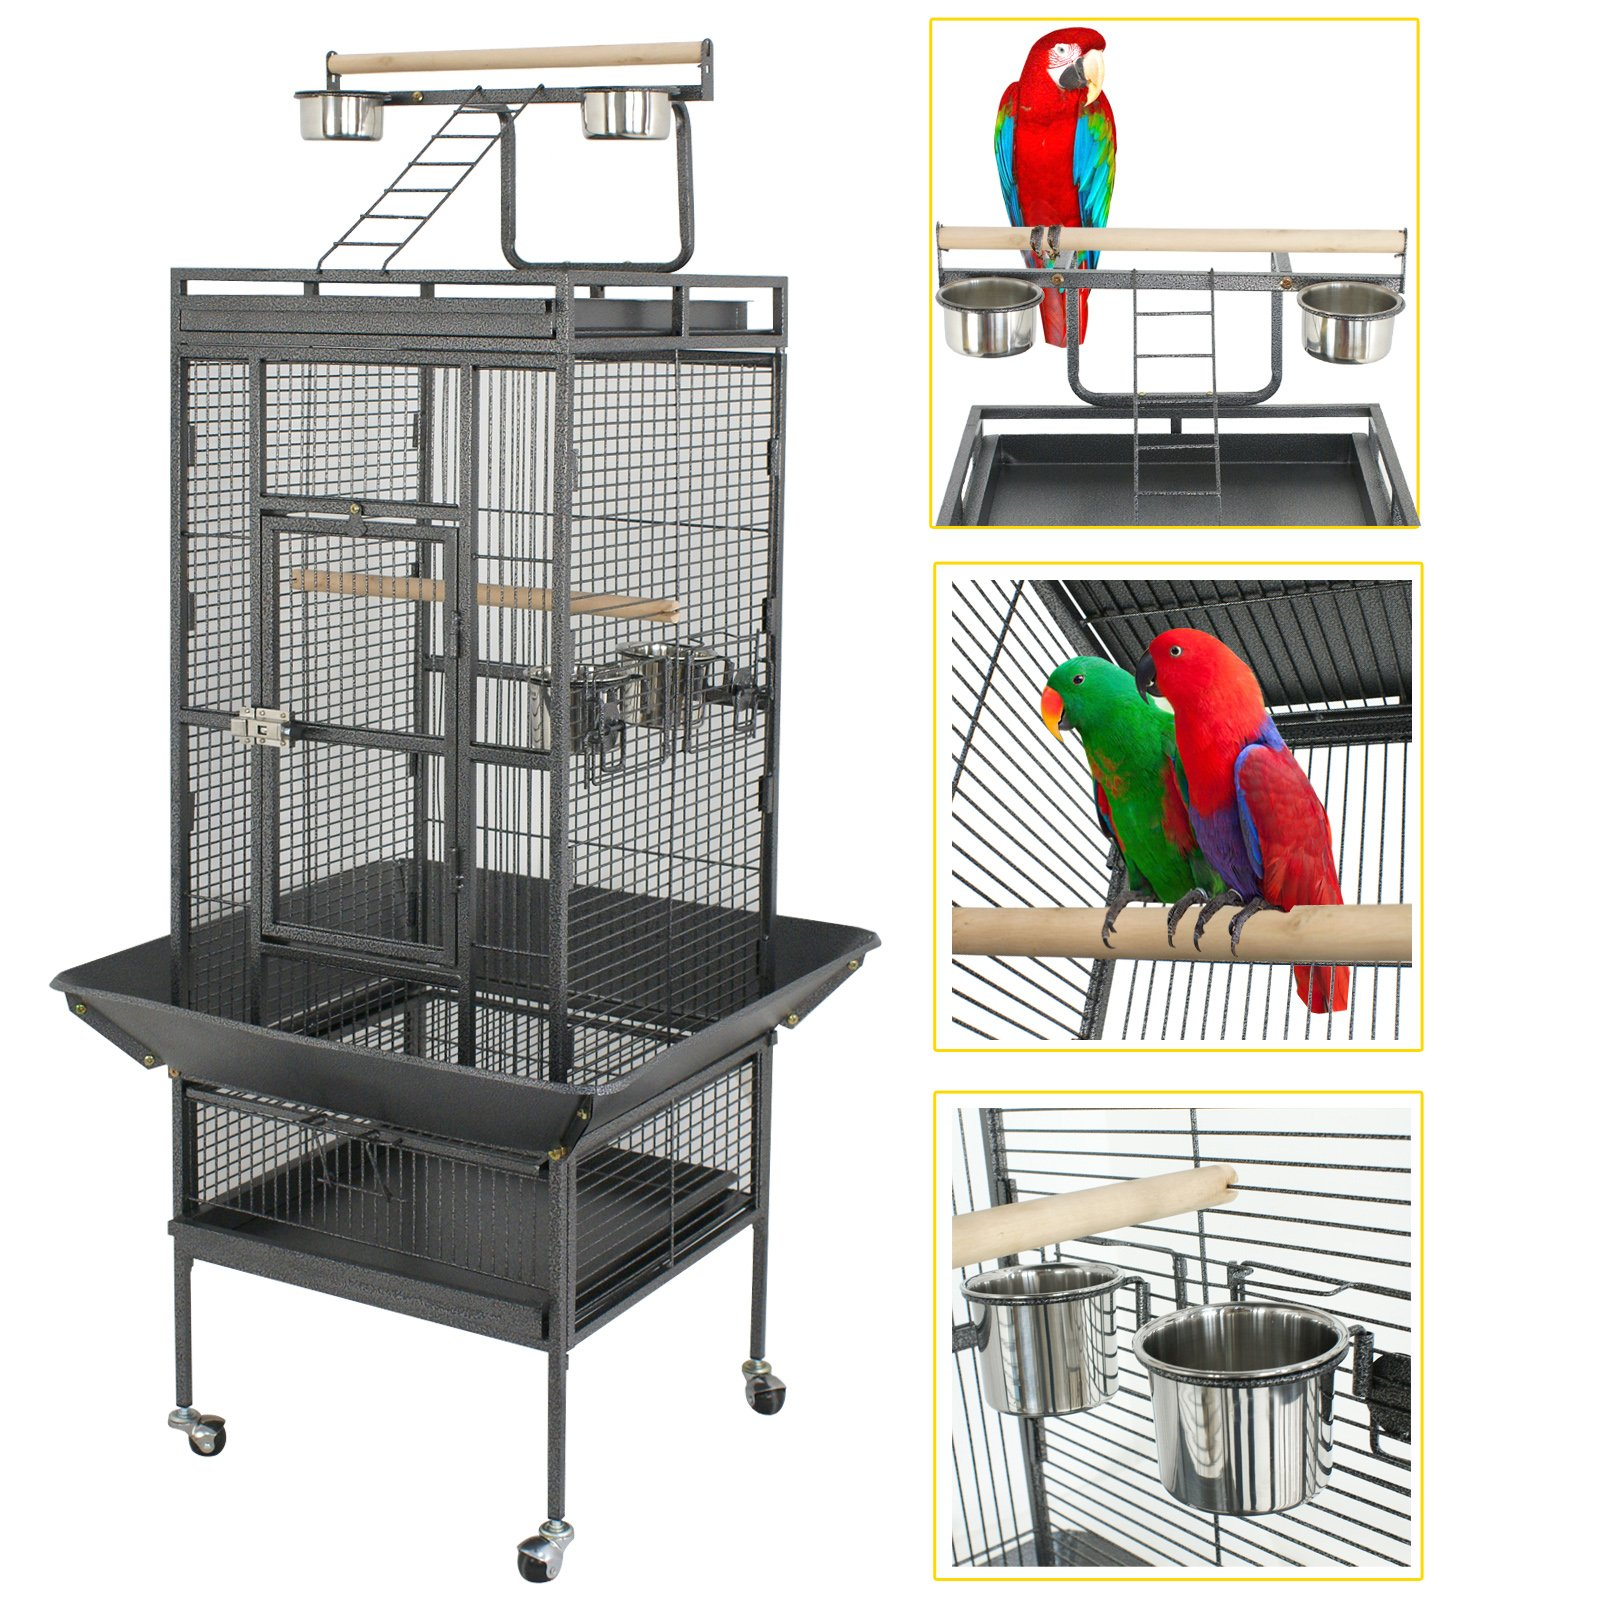 SUPER DEAL PRO 61''/ 68'' 2in1 Large Bird Cage with Rolling Stand Parrot Chinchilla Finch Cage Macaw Conure Cockatiel Cockatoo Pet House Wrought Iron Birdcage, Black (61'') by SUPER DEAL